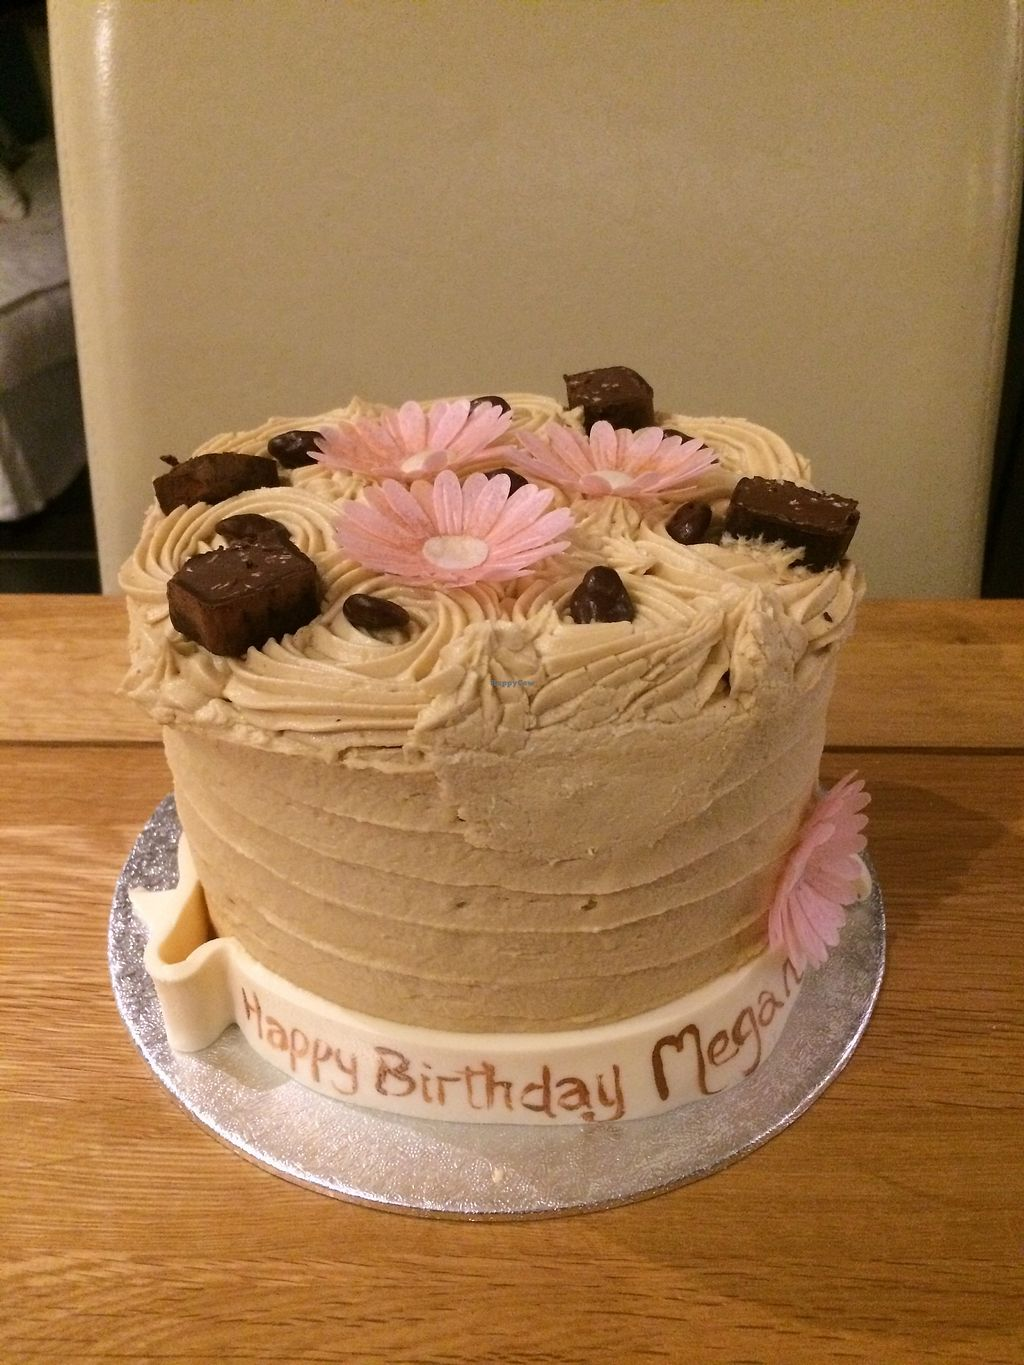 Birthday Coffee Cake At The Exclusive Shop Vintage Tearoom In Chichester